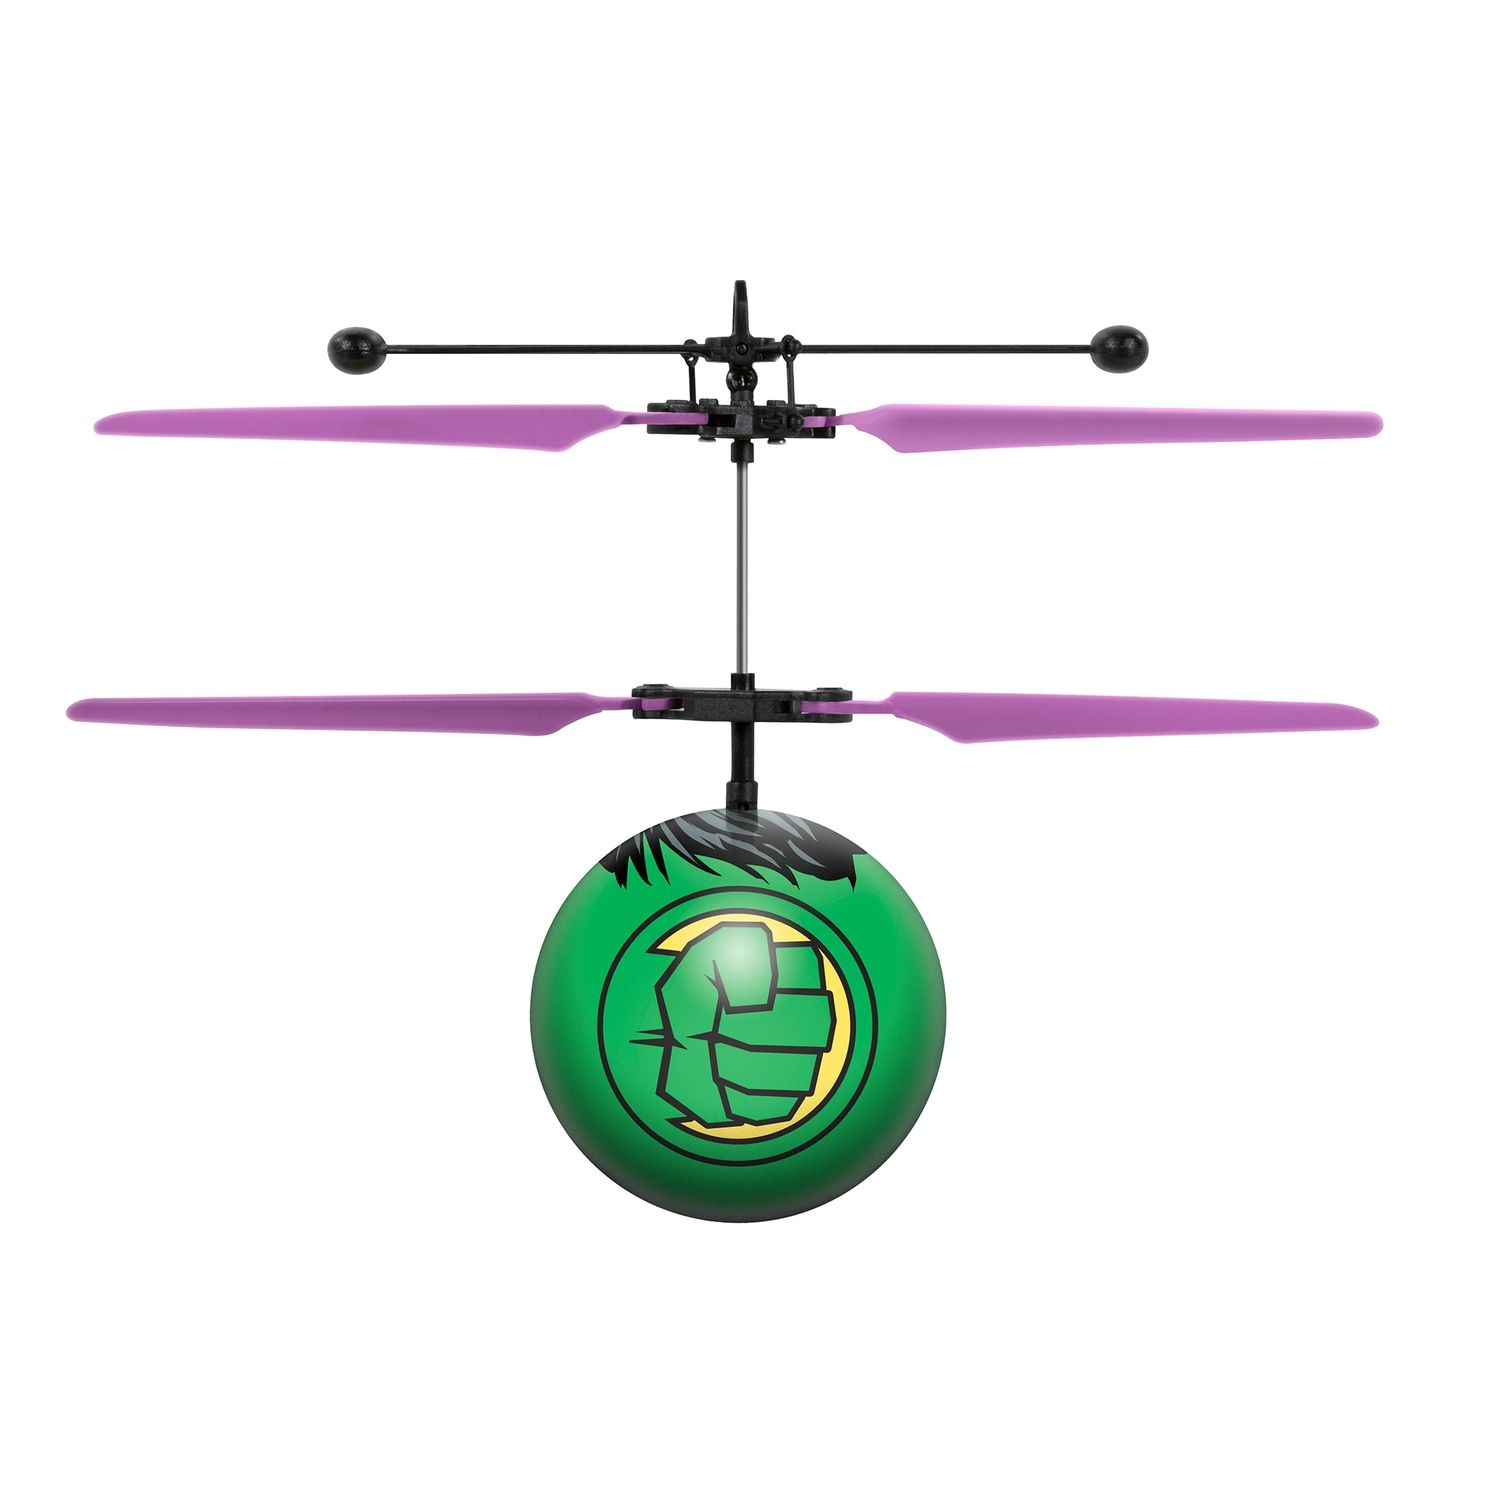 World Tech Toys Avengers Hulk Heli Ball #techtoys